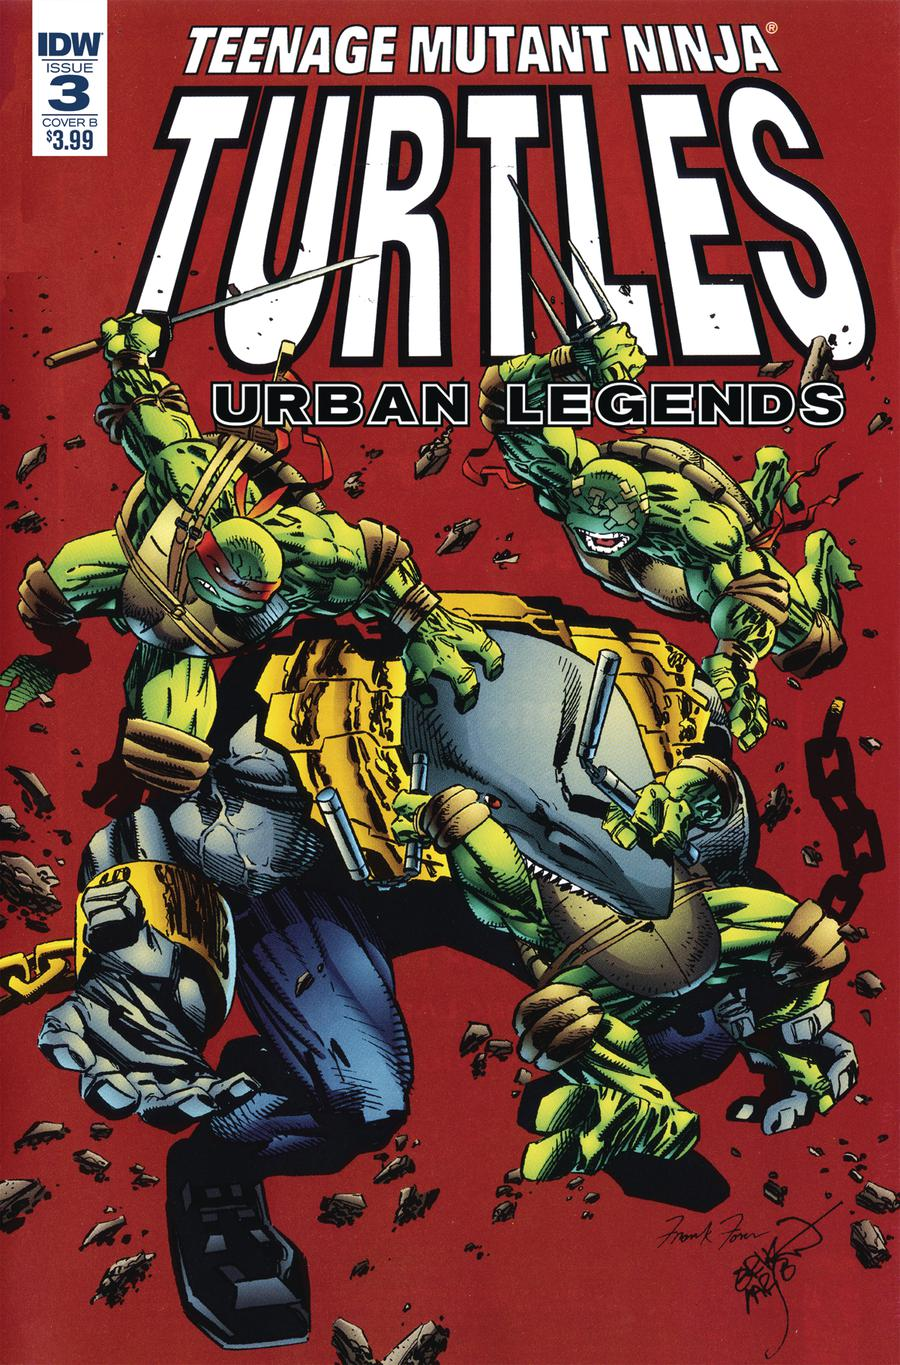 Teenage Mutant Ninja Turtles Urban Legends #3 Cover B Variant Erik Larsen & Frank Fosco Cover